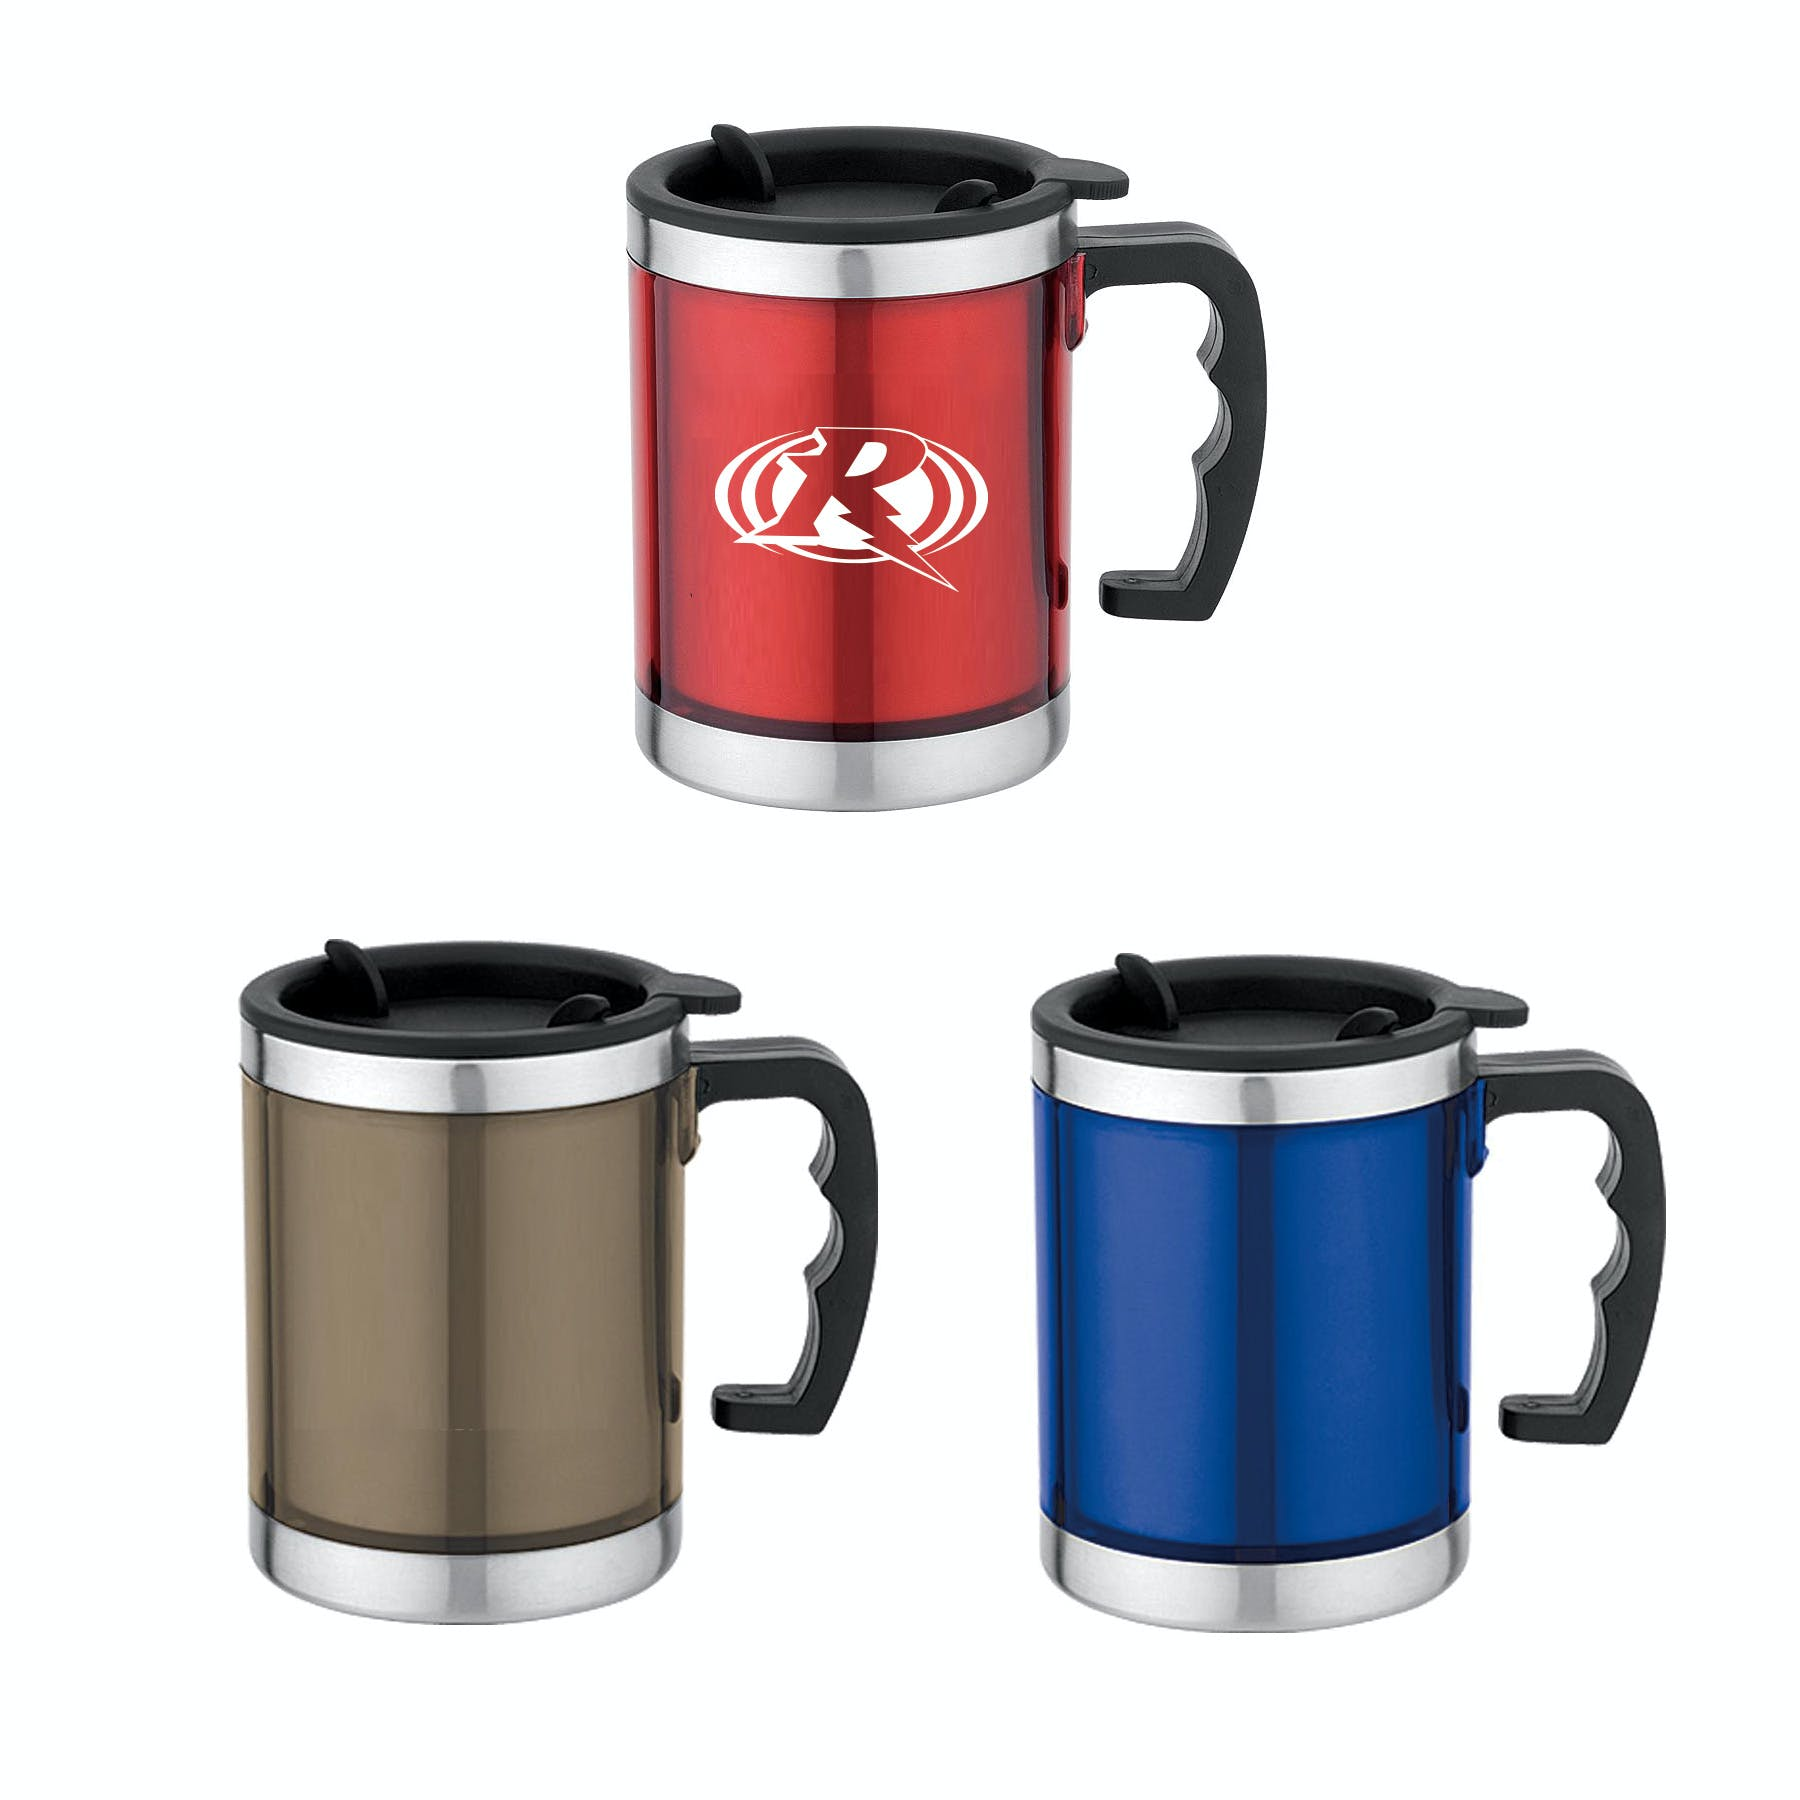 16 Oz. Stainless Steel Mug with Handle (Item # HIIPP-HASPY) Stainless steel mug sold by InkEasy